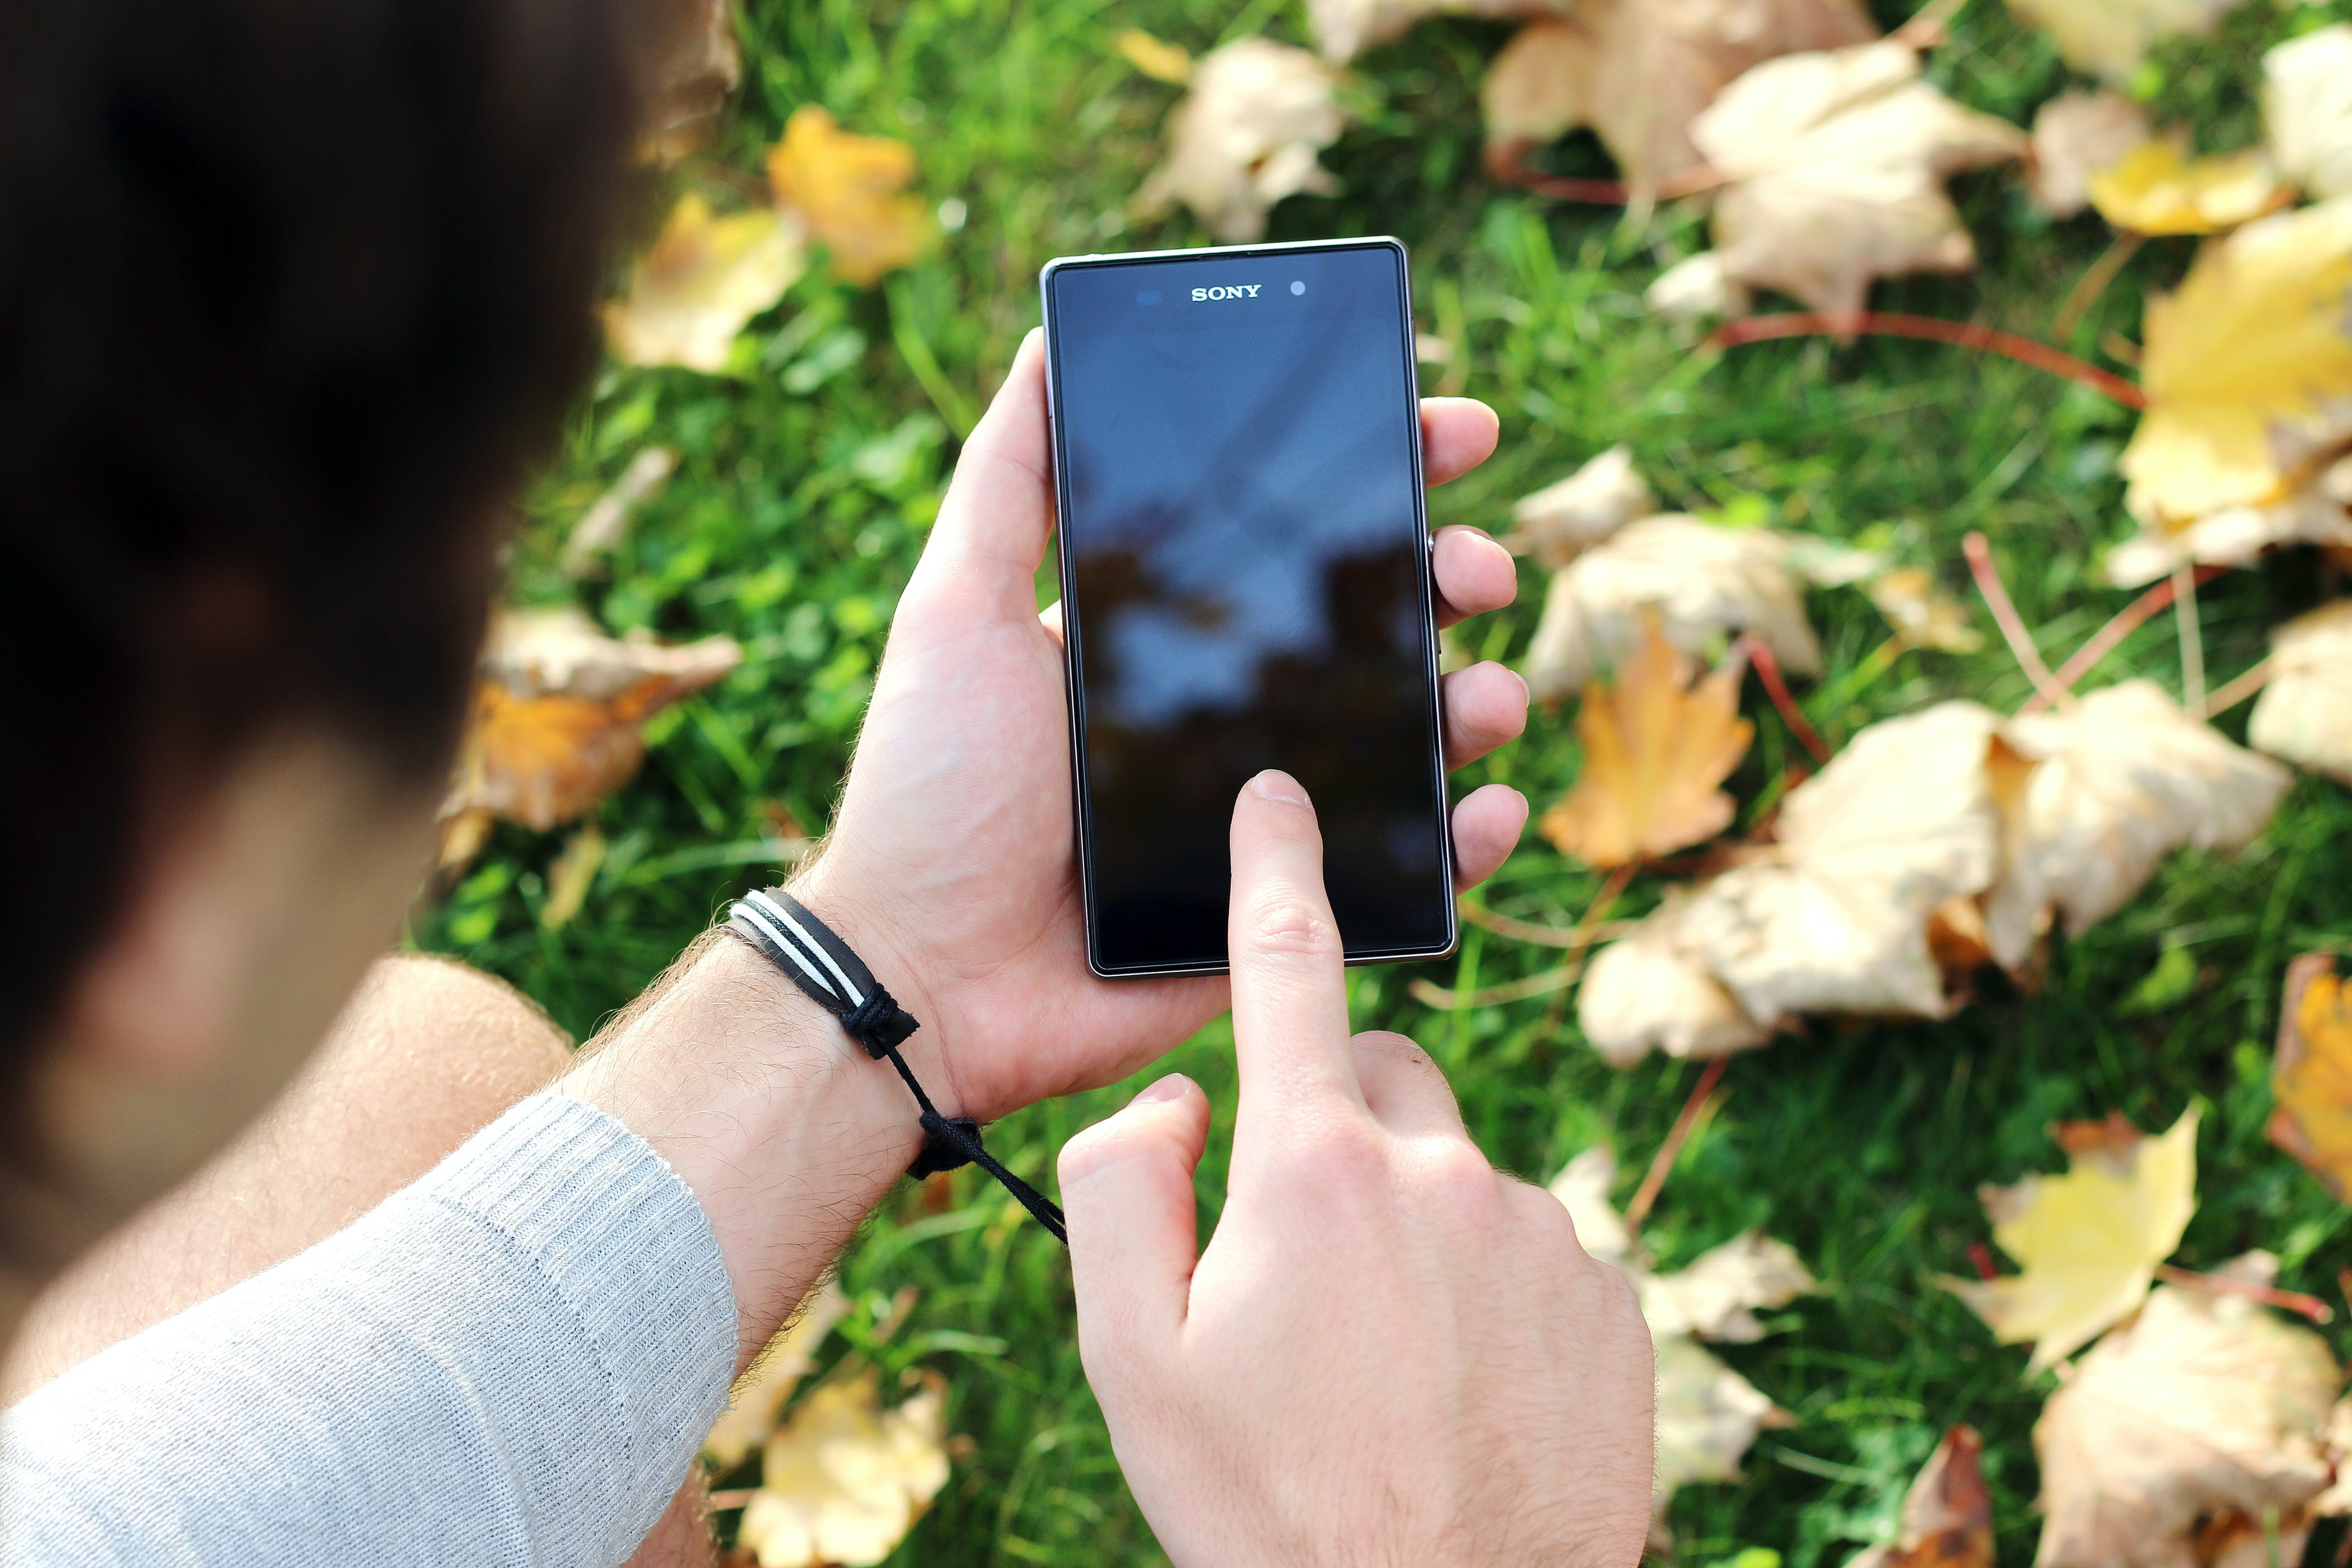 Person Using the Black Sony Android Smartphone